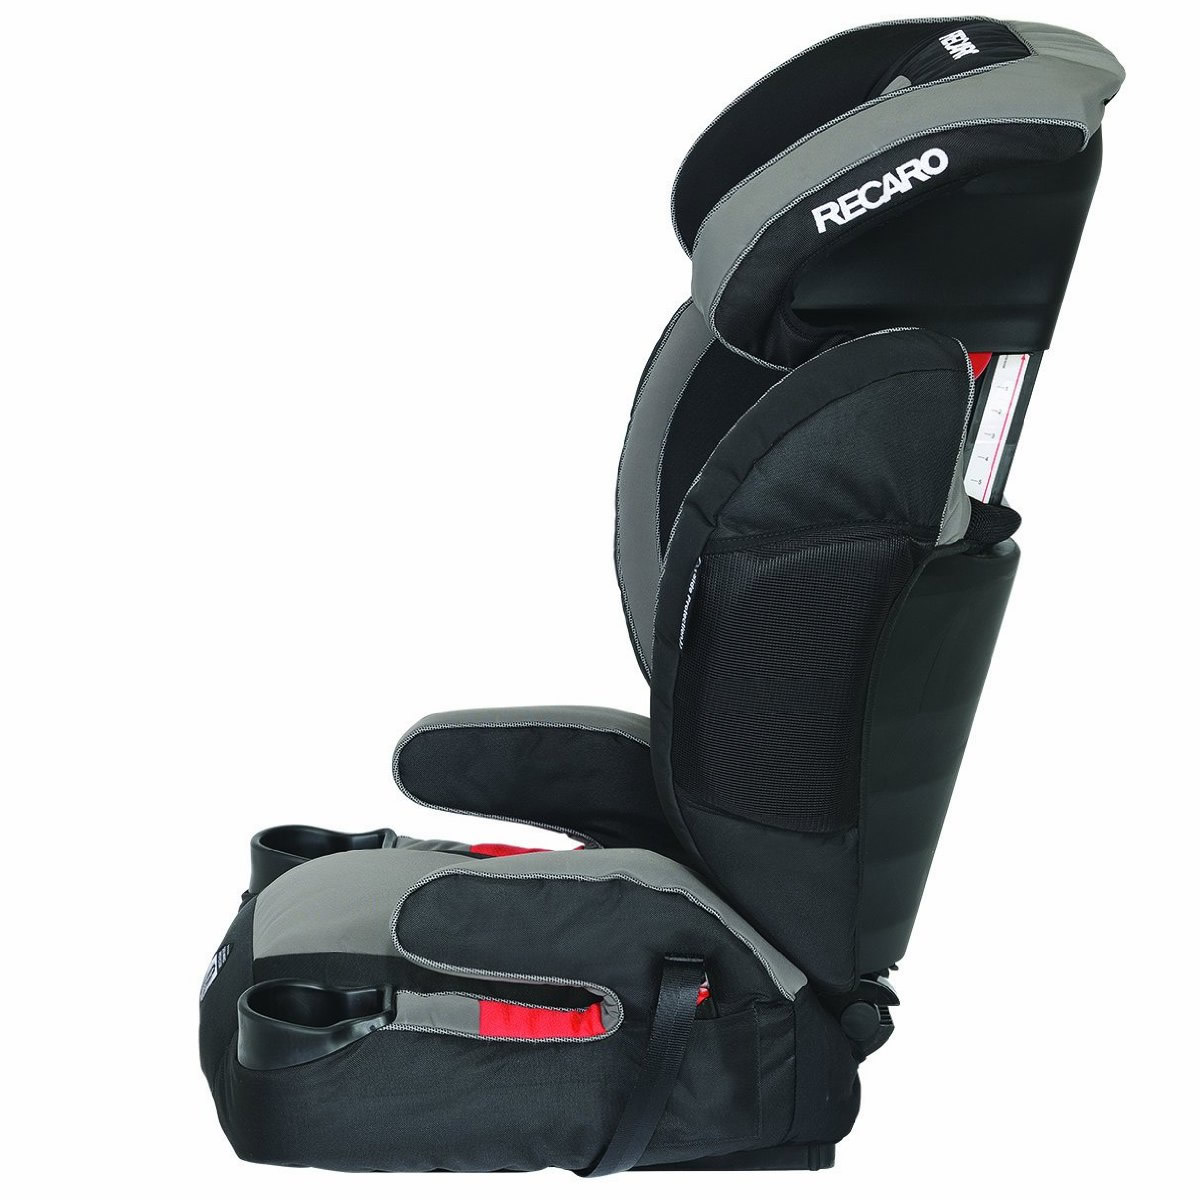 Recaro Baby Seat Parts Recaro Car Seat Coupons 2018 10 Rug Doctor Rental Coupon